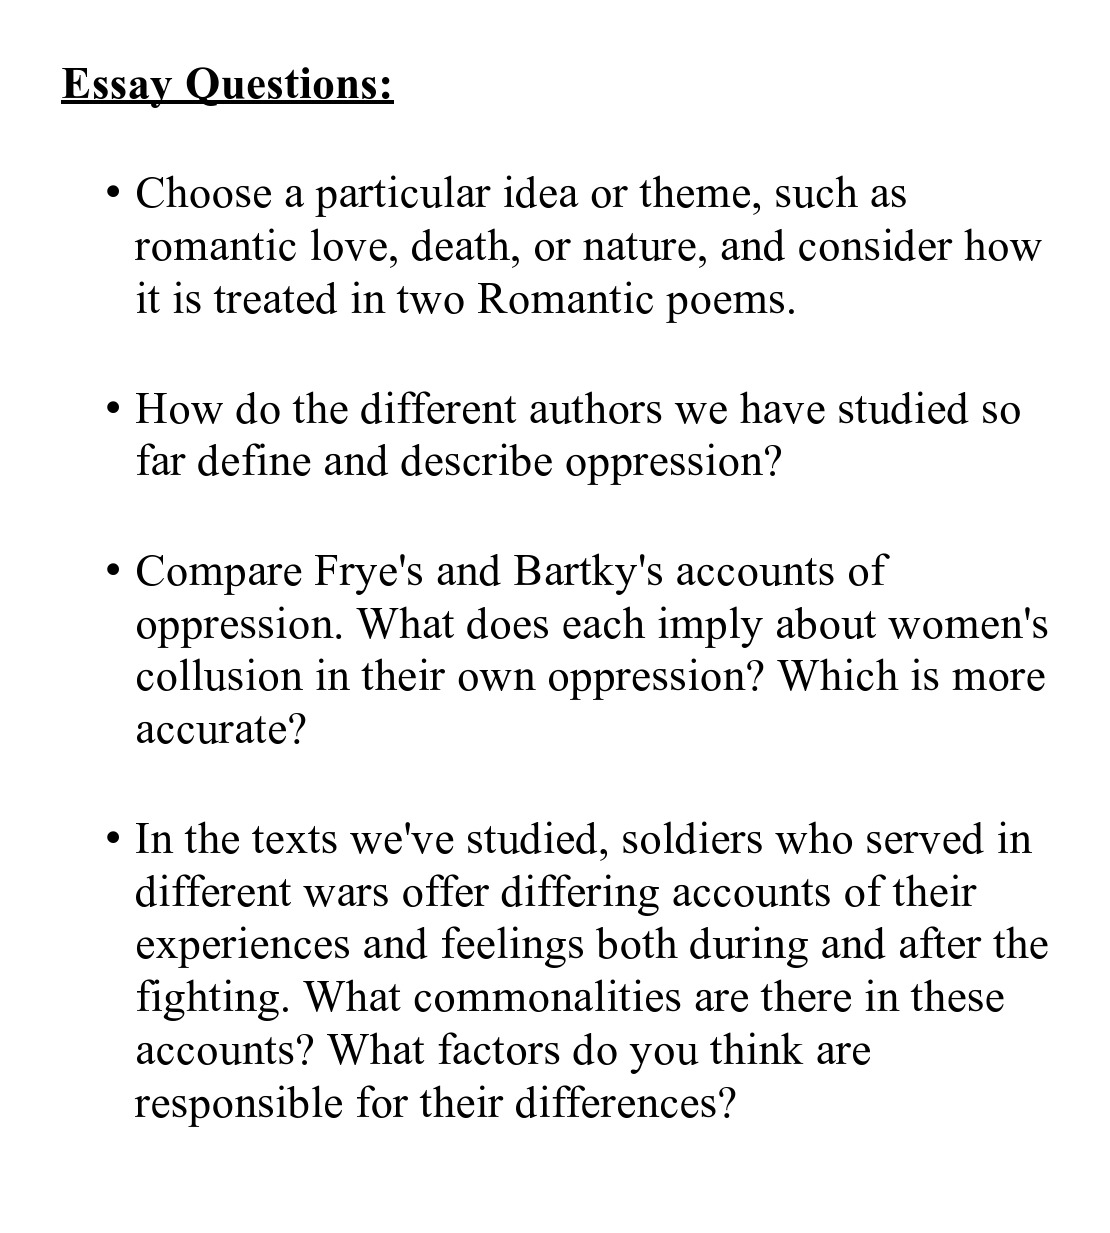 001 Essay Questions Questionss Beautiful Examples Exam Extended Response Question Cma Full